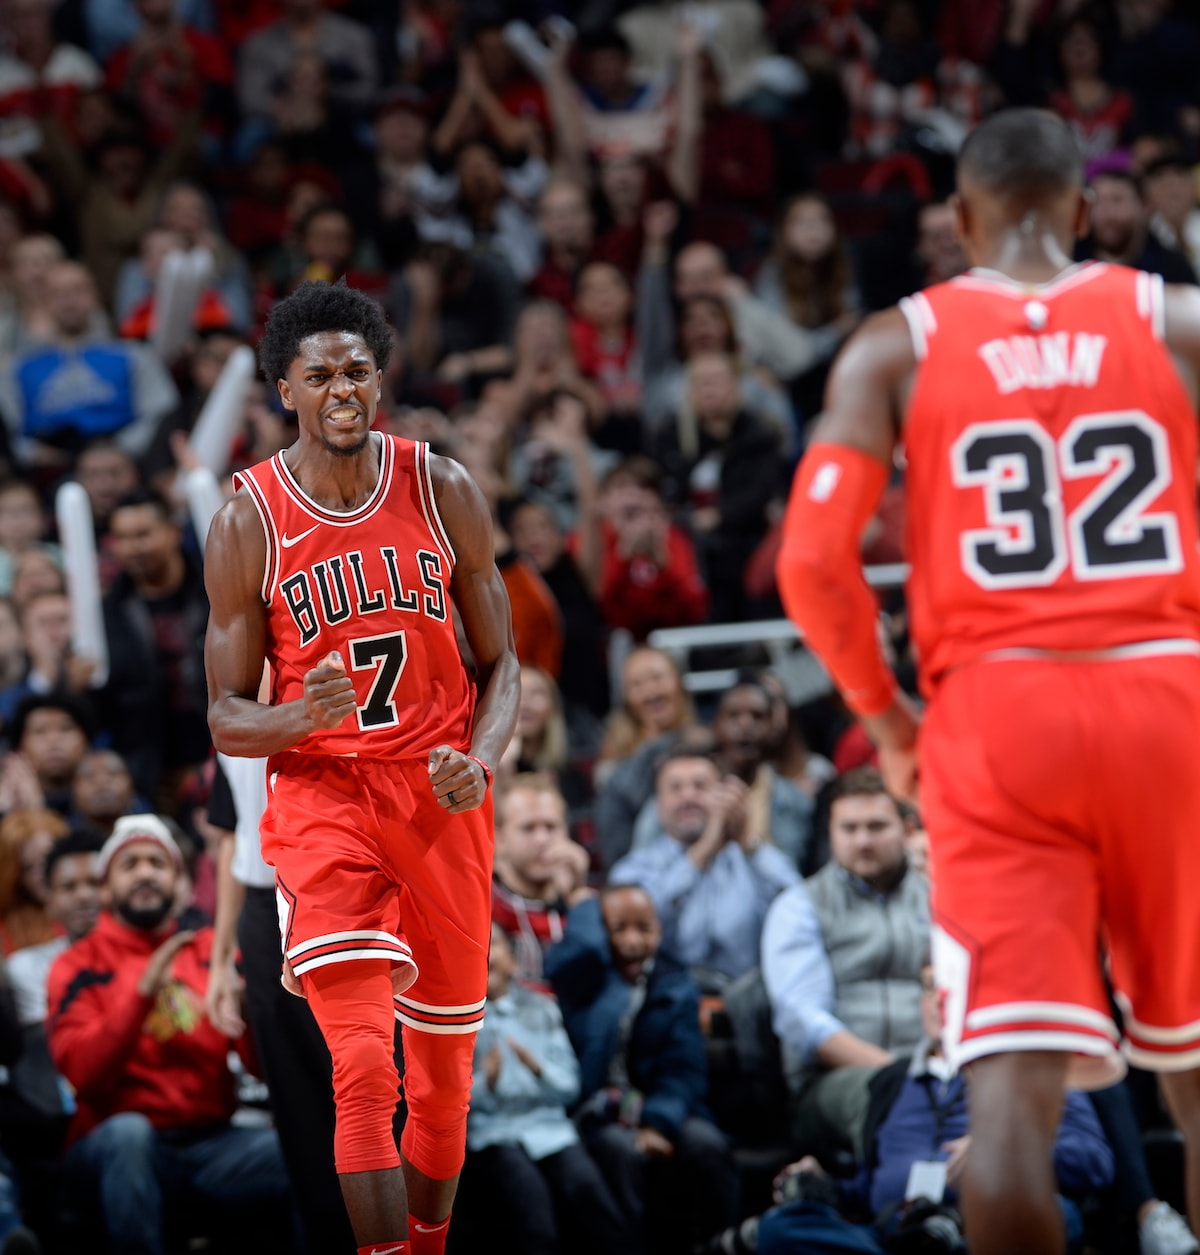 Justin Holiday #7 of the Chicago Bulls cheers during the game while looking towards Kris Dunn #32 of the Chicago Bulls during the game against the Charlotte Hornets on November 17 at the United Center in Chicago, Illinois.